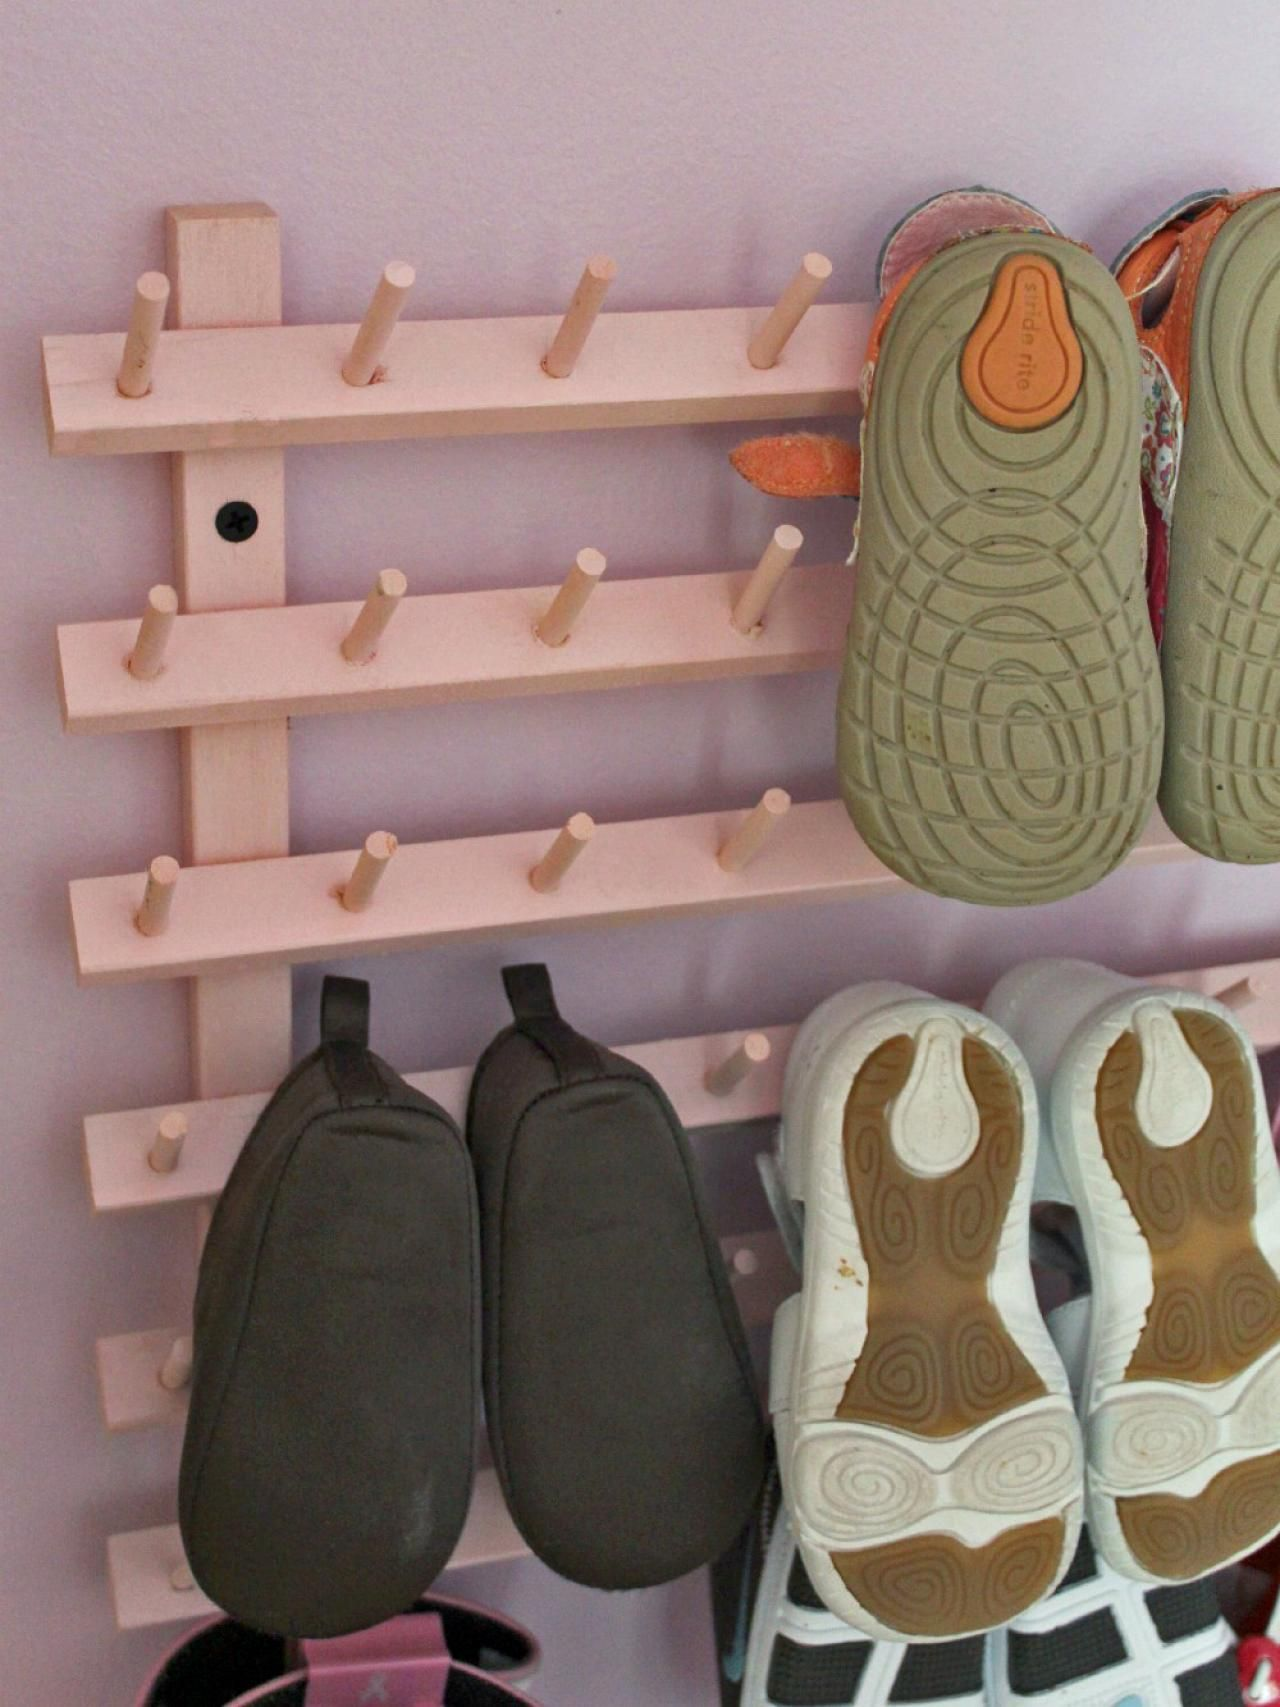 Try A Closet Storage Container To Corral Clutter Instantly Baby Shoe Storage Shoe Storage Solutions Shoe Storage Design